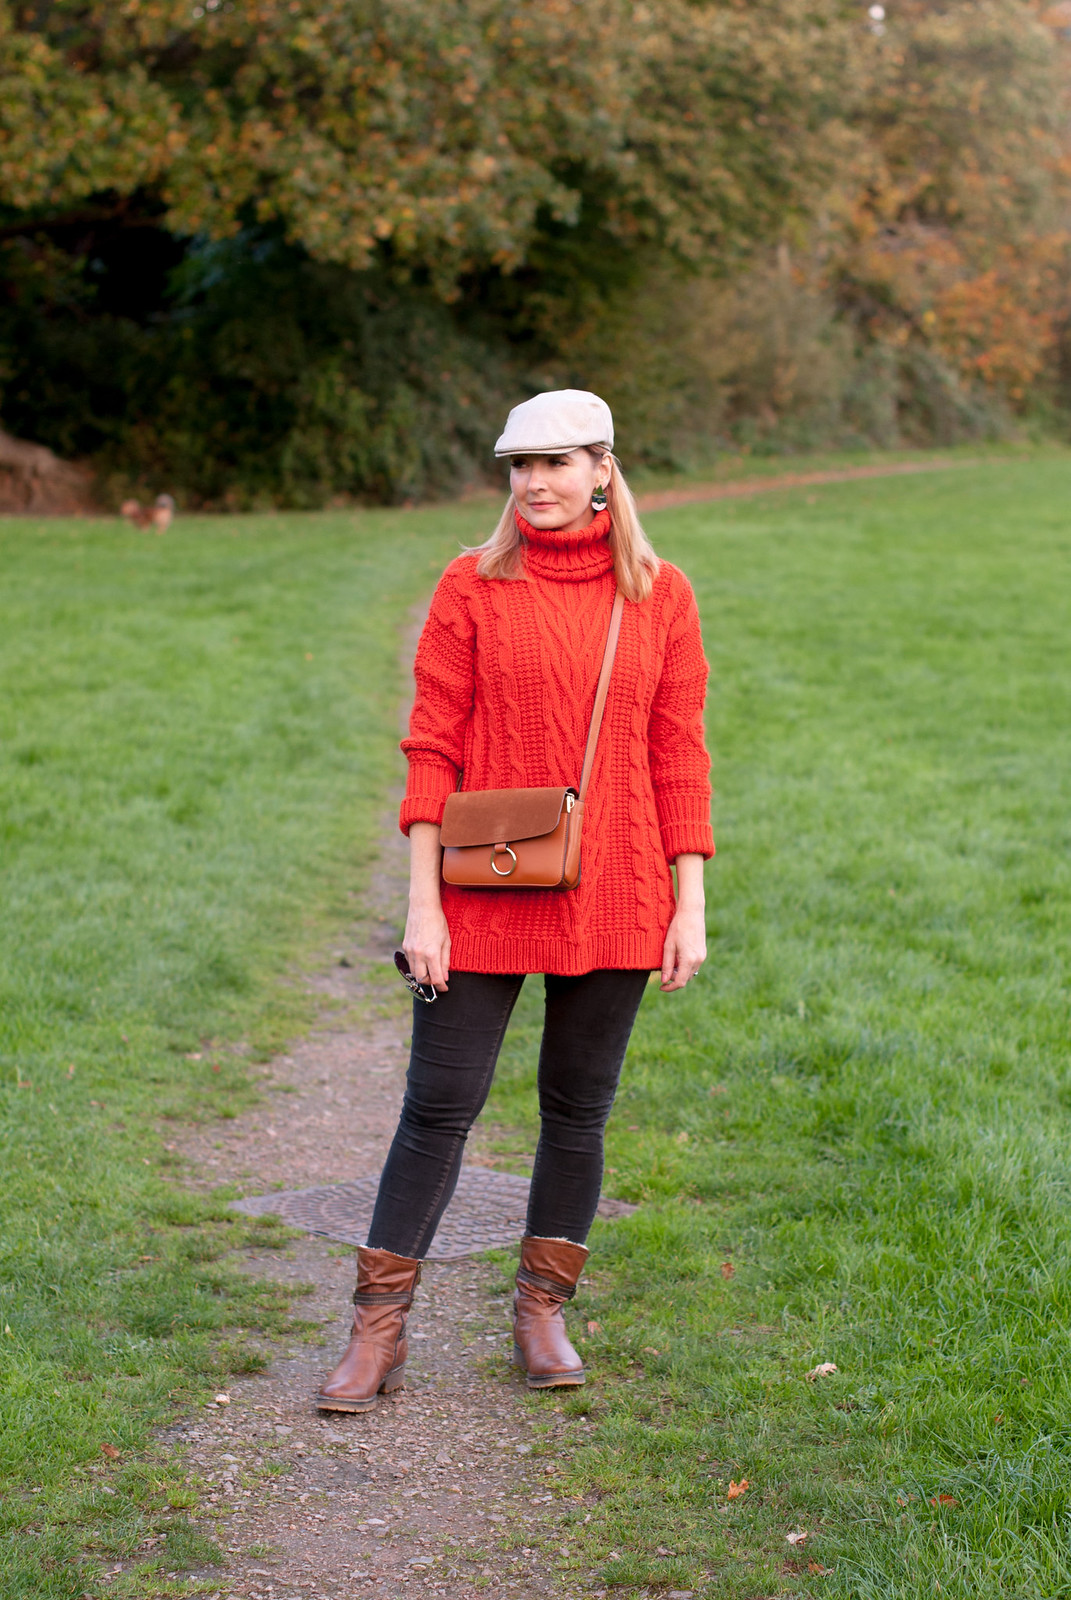 Cozy, comfy autumn fall outfit for walking the dog  long orange-red roll neck sweater  skinny jeans  brown ankle boots  flat cap | Not Dressed As Lamb, over 40 style